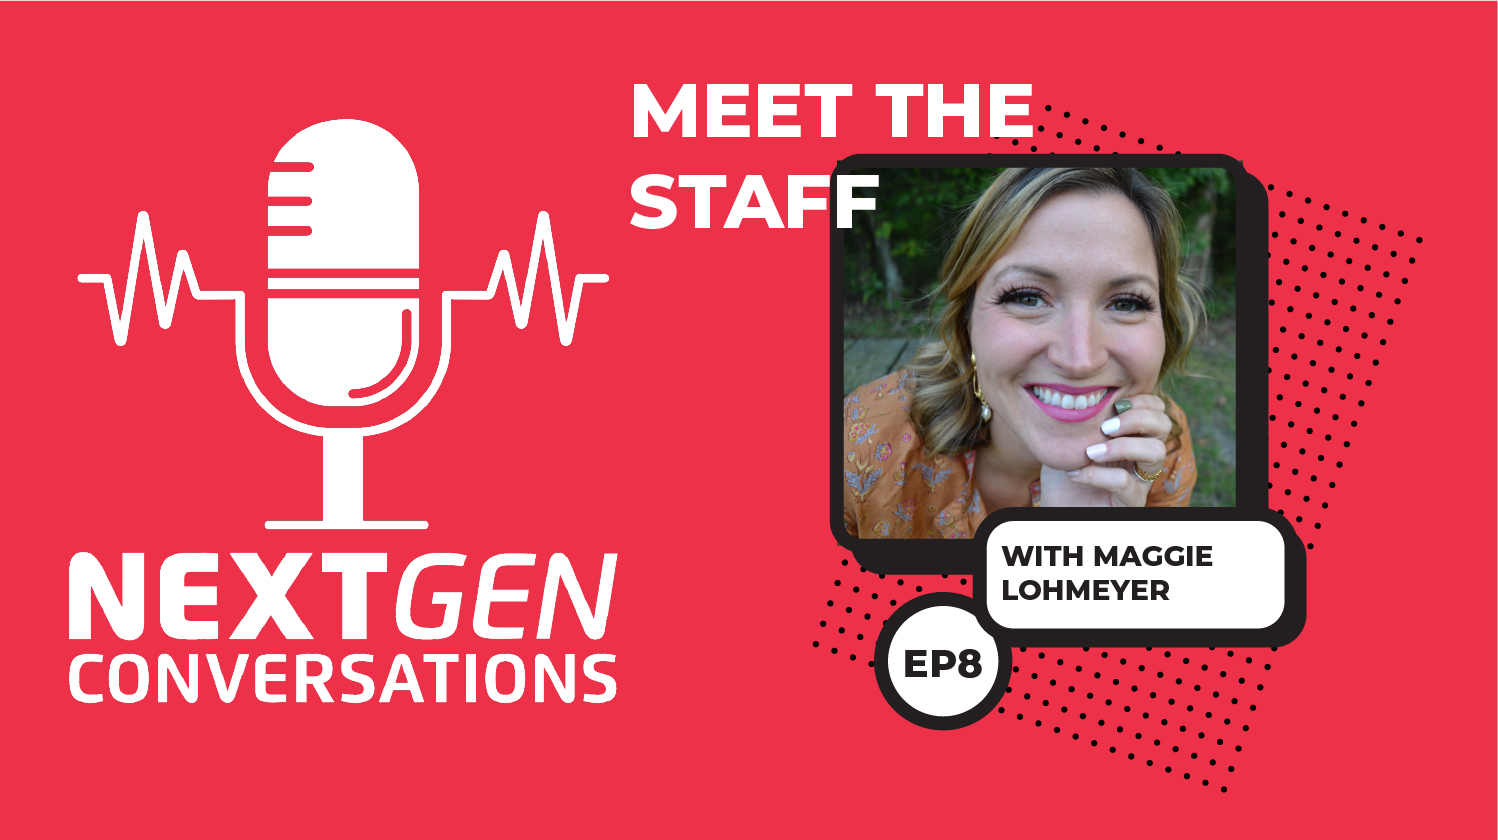 Meet the Staff with Maggie Lohmeyer